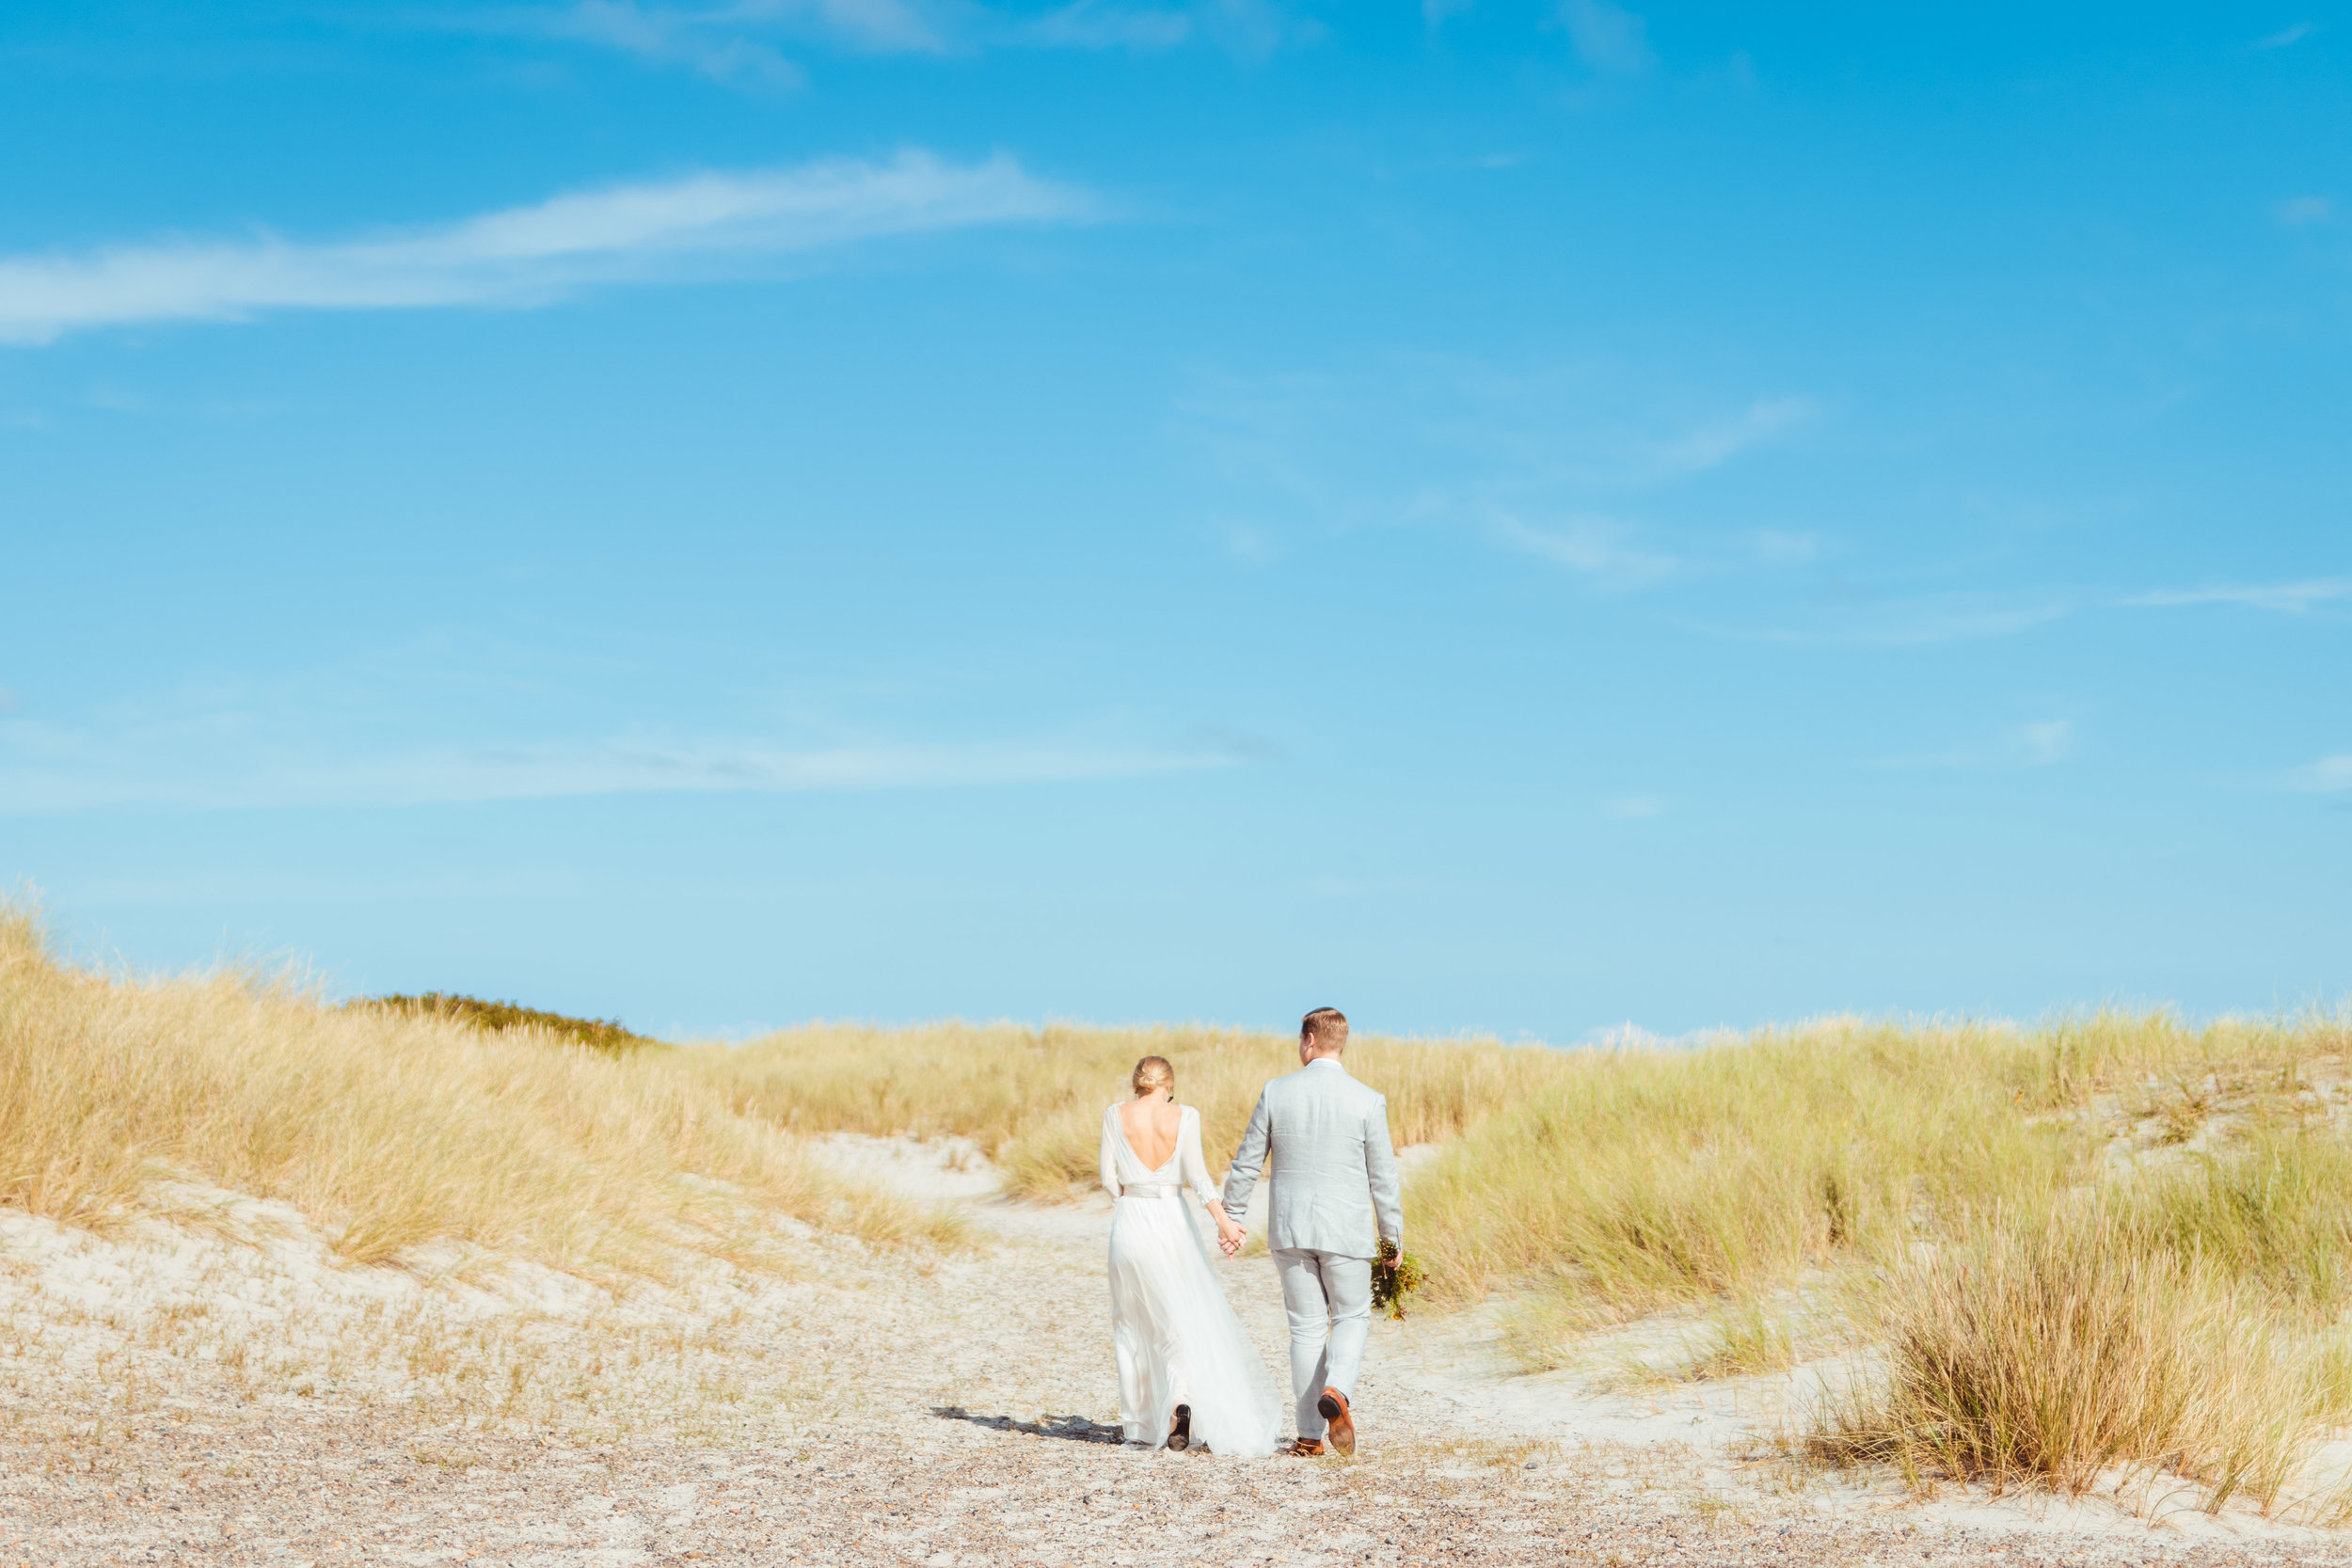 EBBA & ANDREAS - WEDDING